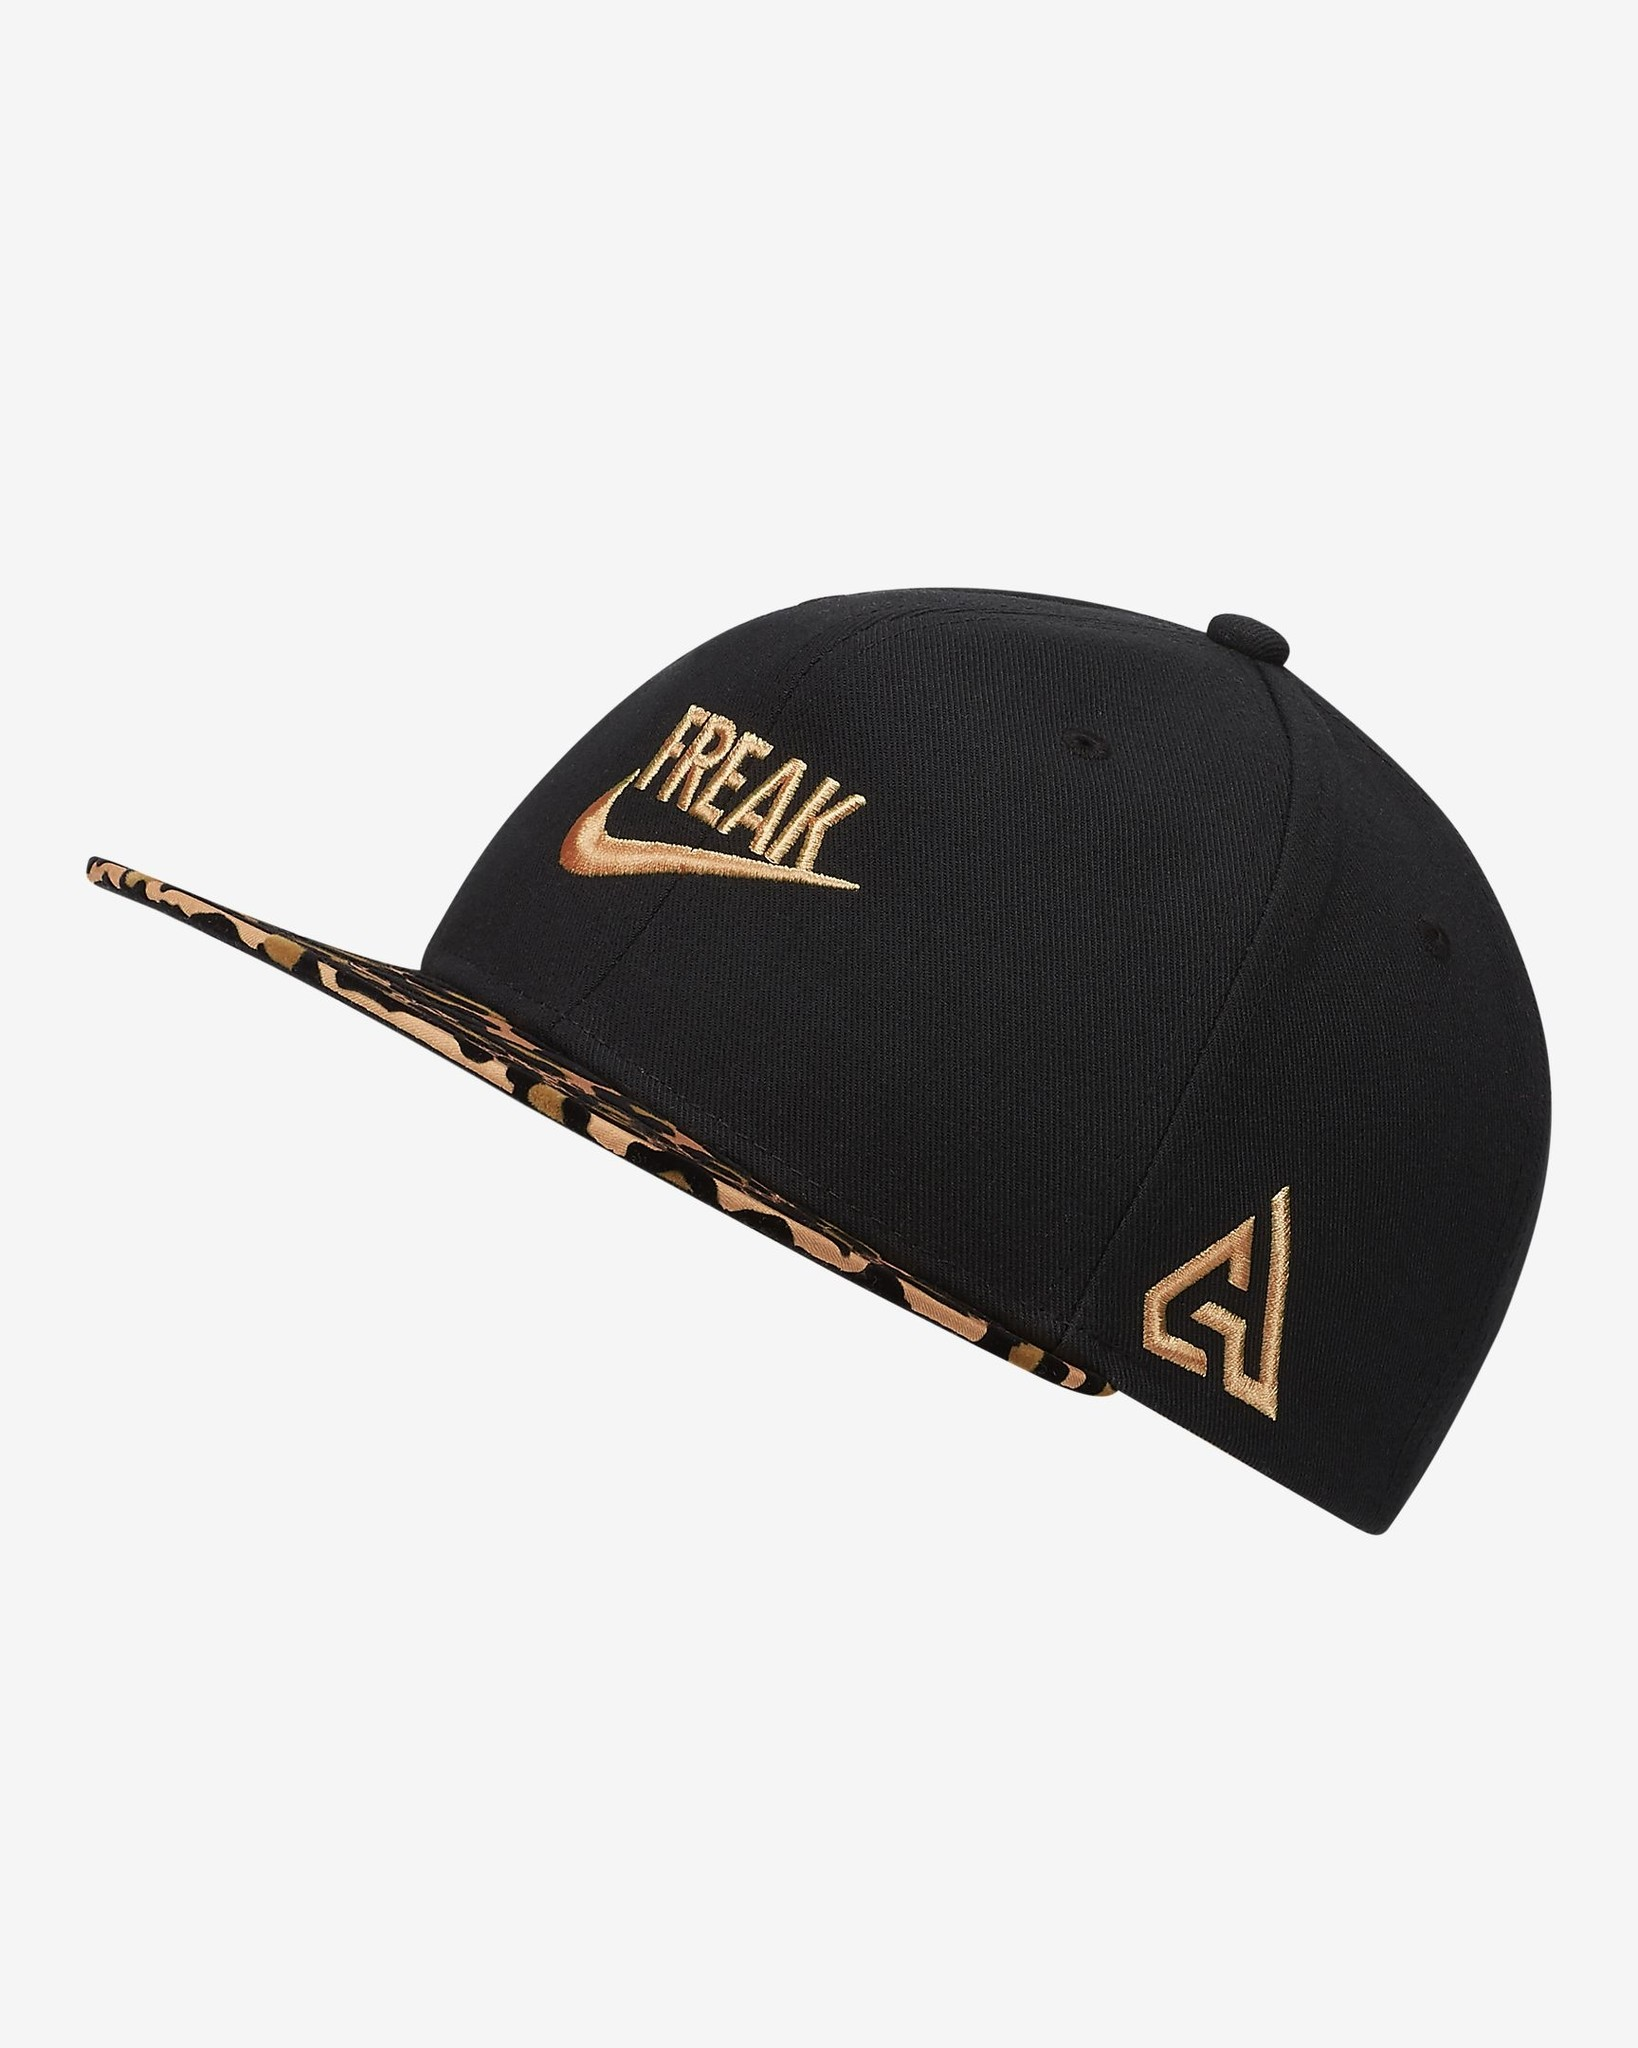 super specials official buying cheap Nike Bucks Giannis 'Coming To America' Snapback Hat - Black/Copper